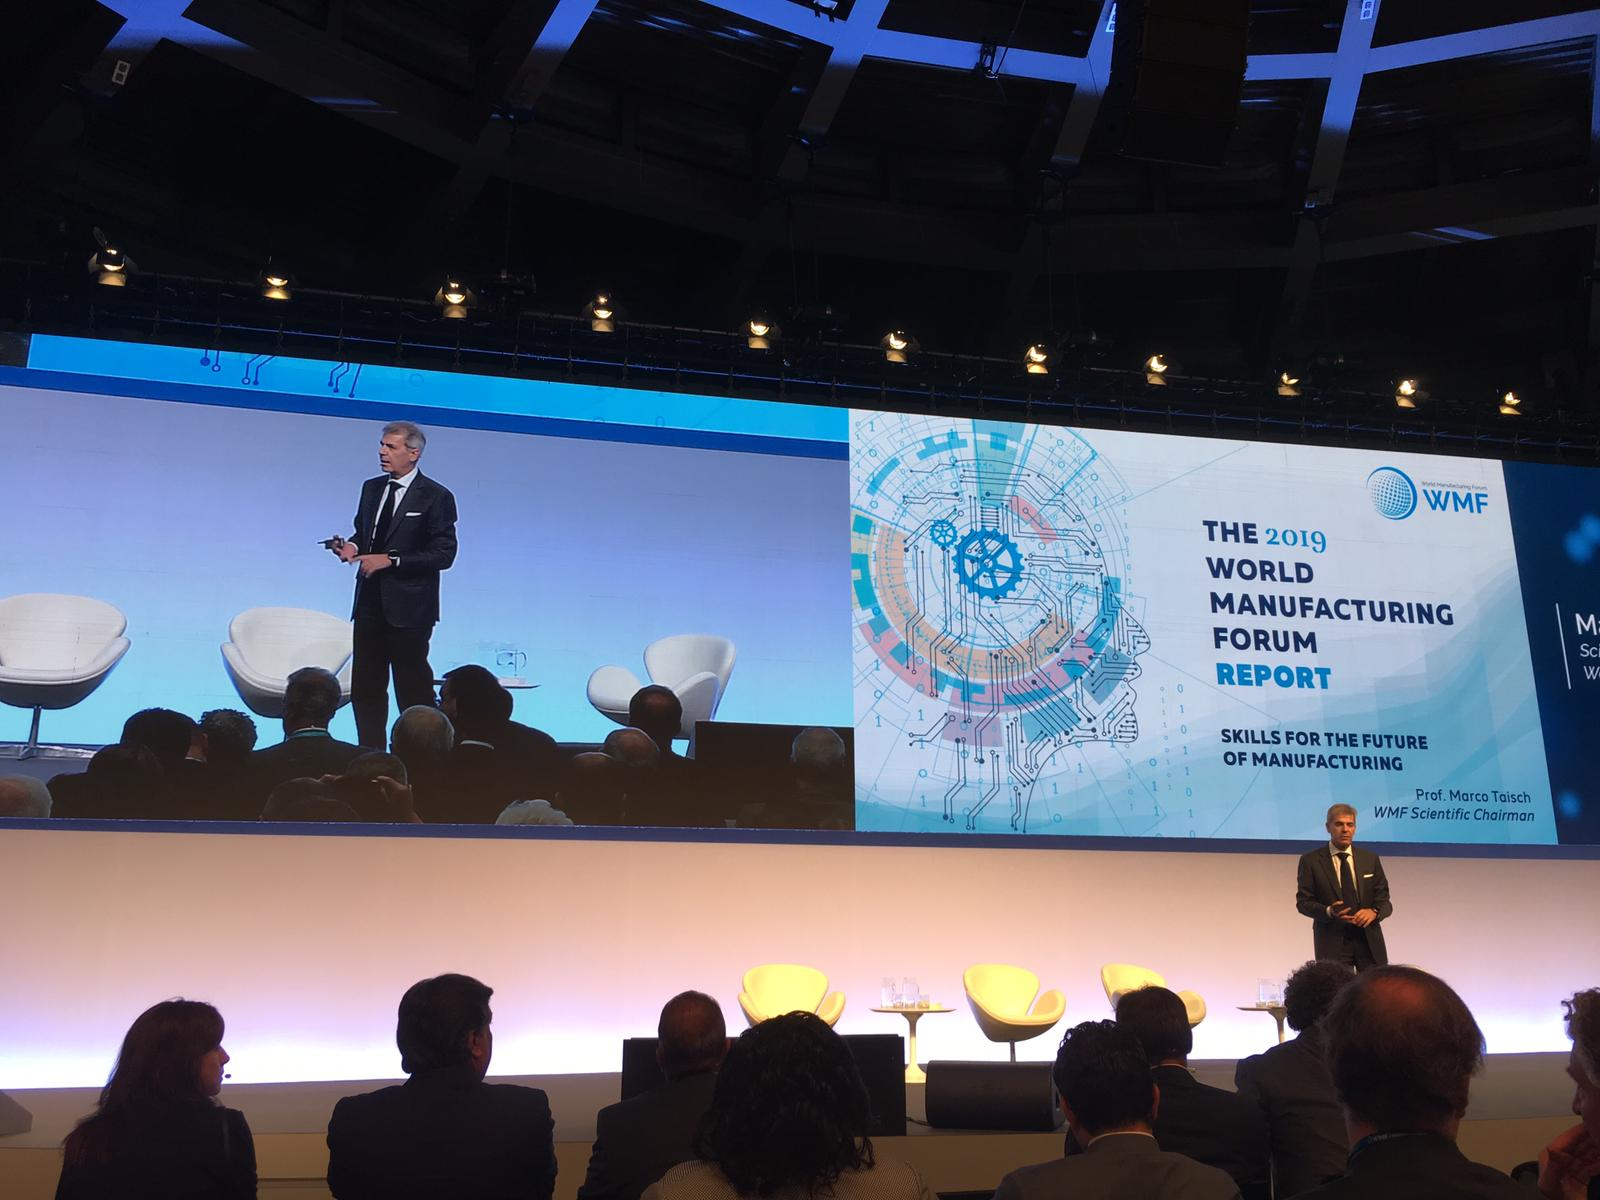 UNIDO ITPO Italy at World Manufacturing Forum 2019  to focus on industrial skills in Developing Countries